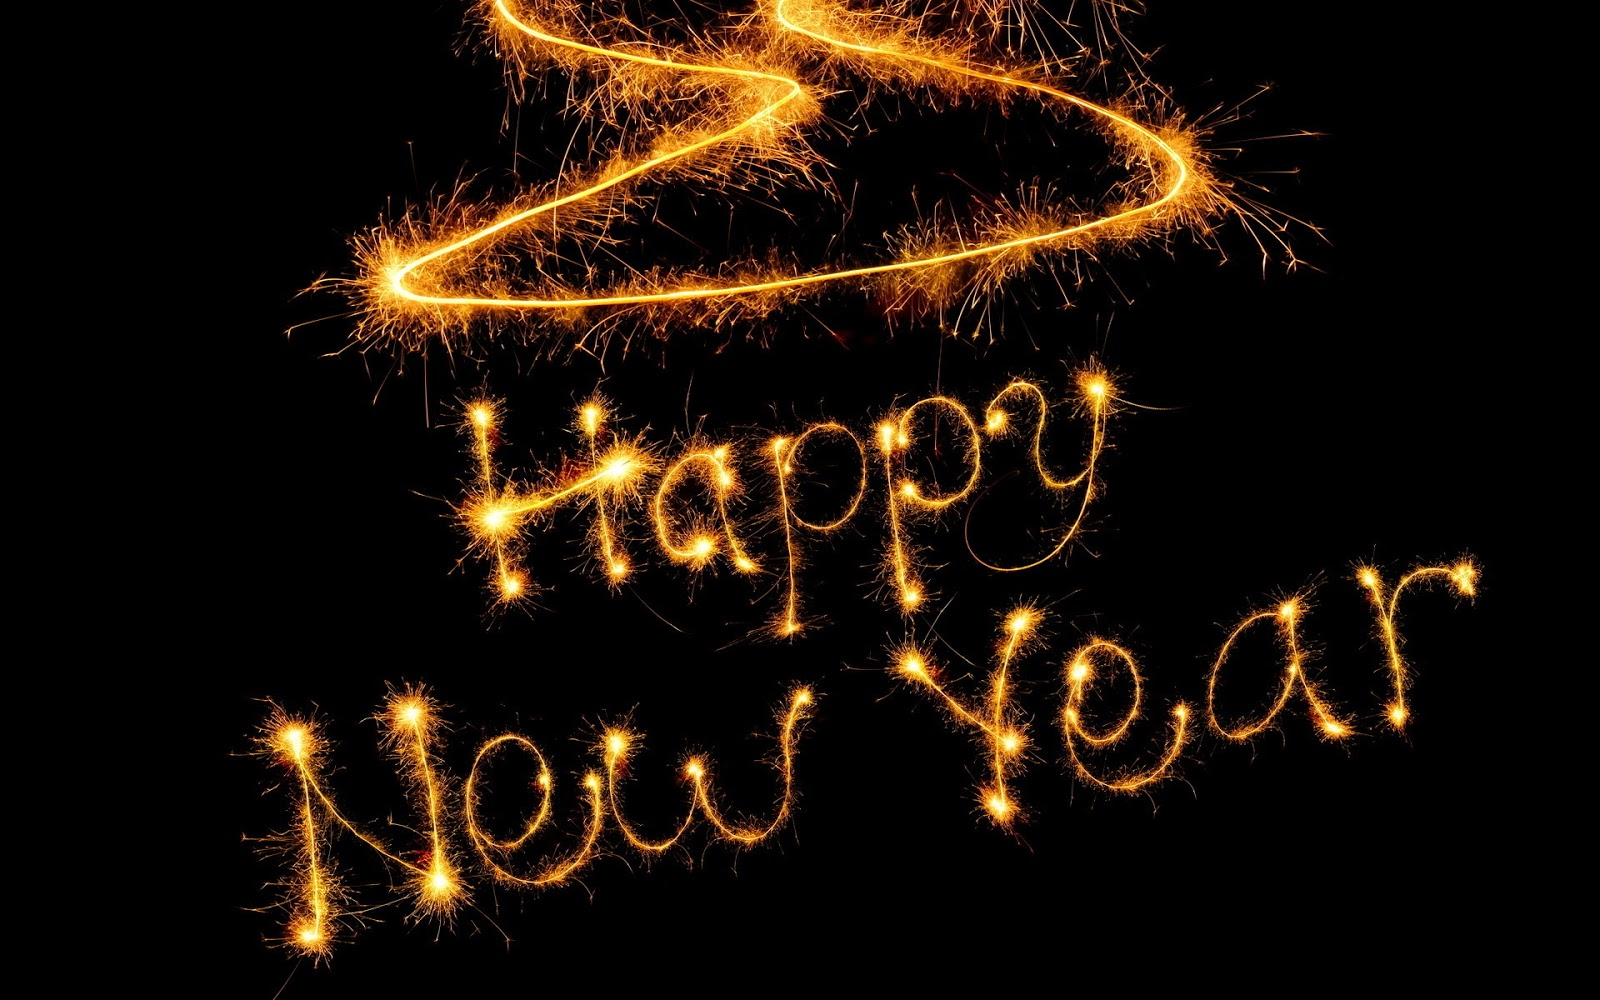 HD Wallpaper Download Happy New Year 2013 HD Wallpaper 1600x1000